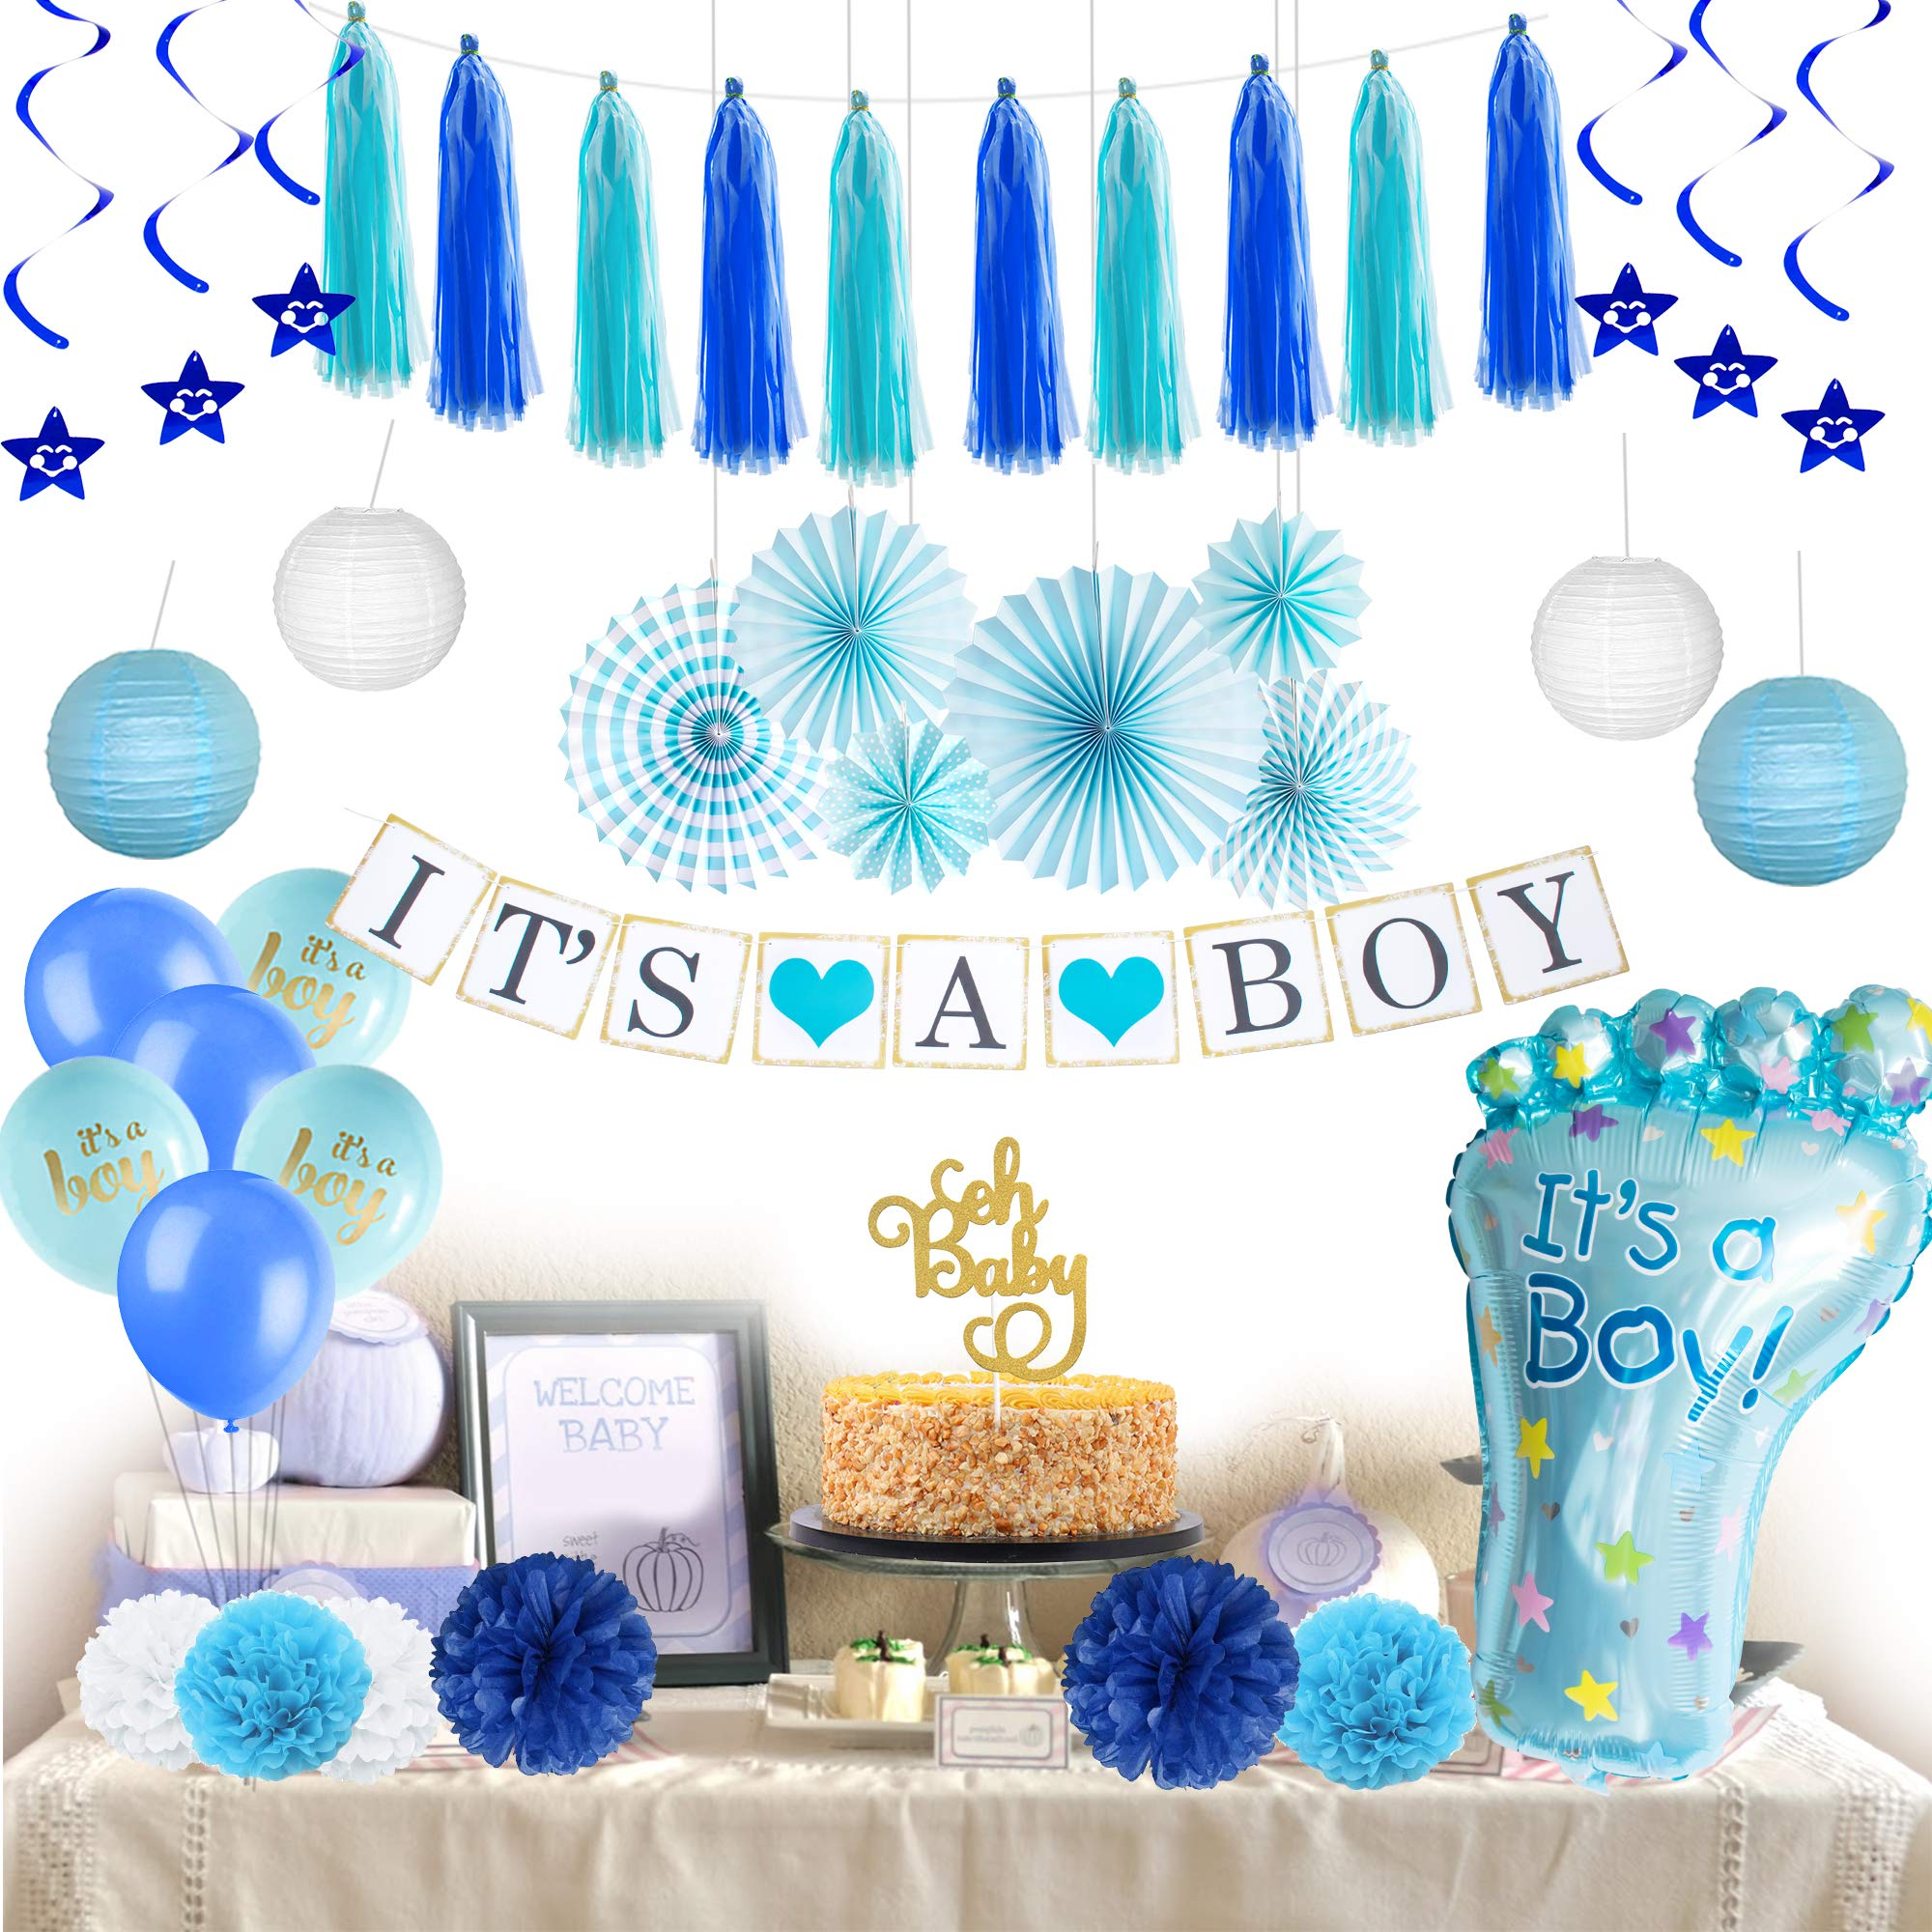 Baby Shower Decorations for Boy I BabyShower Backdrop Decor I Boy Baby Shower Decorations I Premium Party Decoration Items I Its a Boy Banner Star Swirls Foot-shaped Foil Balloon Lanterns, Cake Topper by Moment-O-Mania (Image #1)